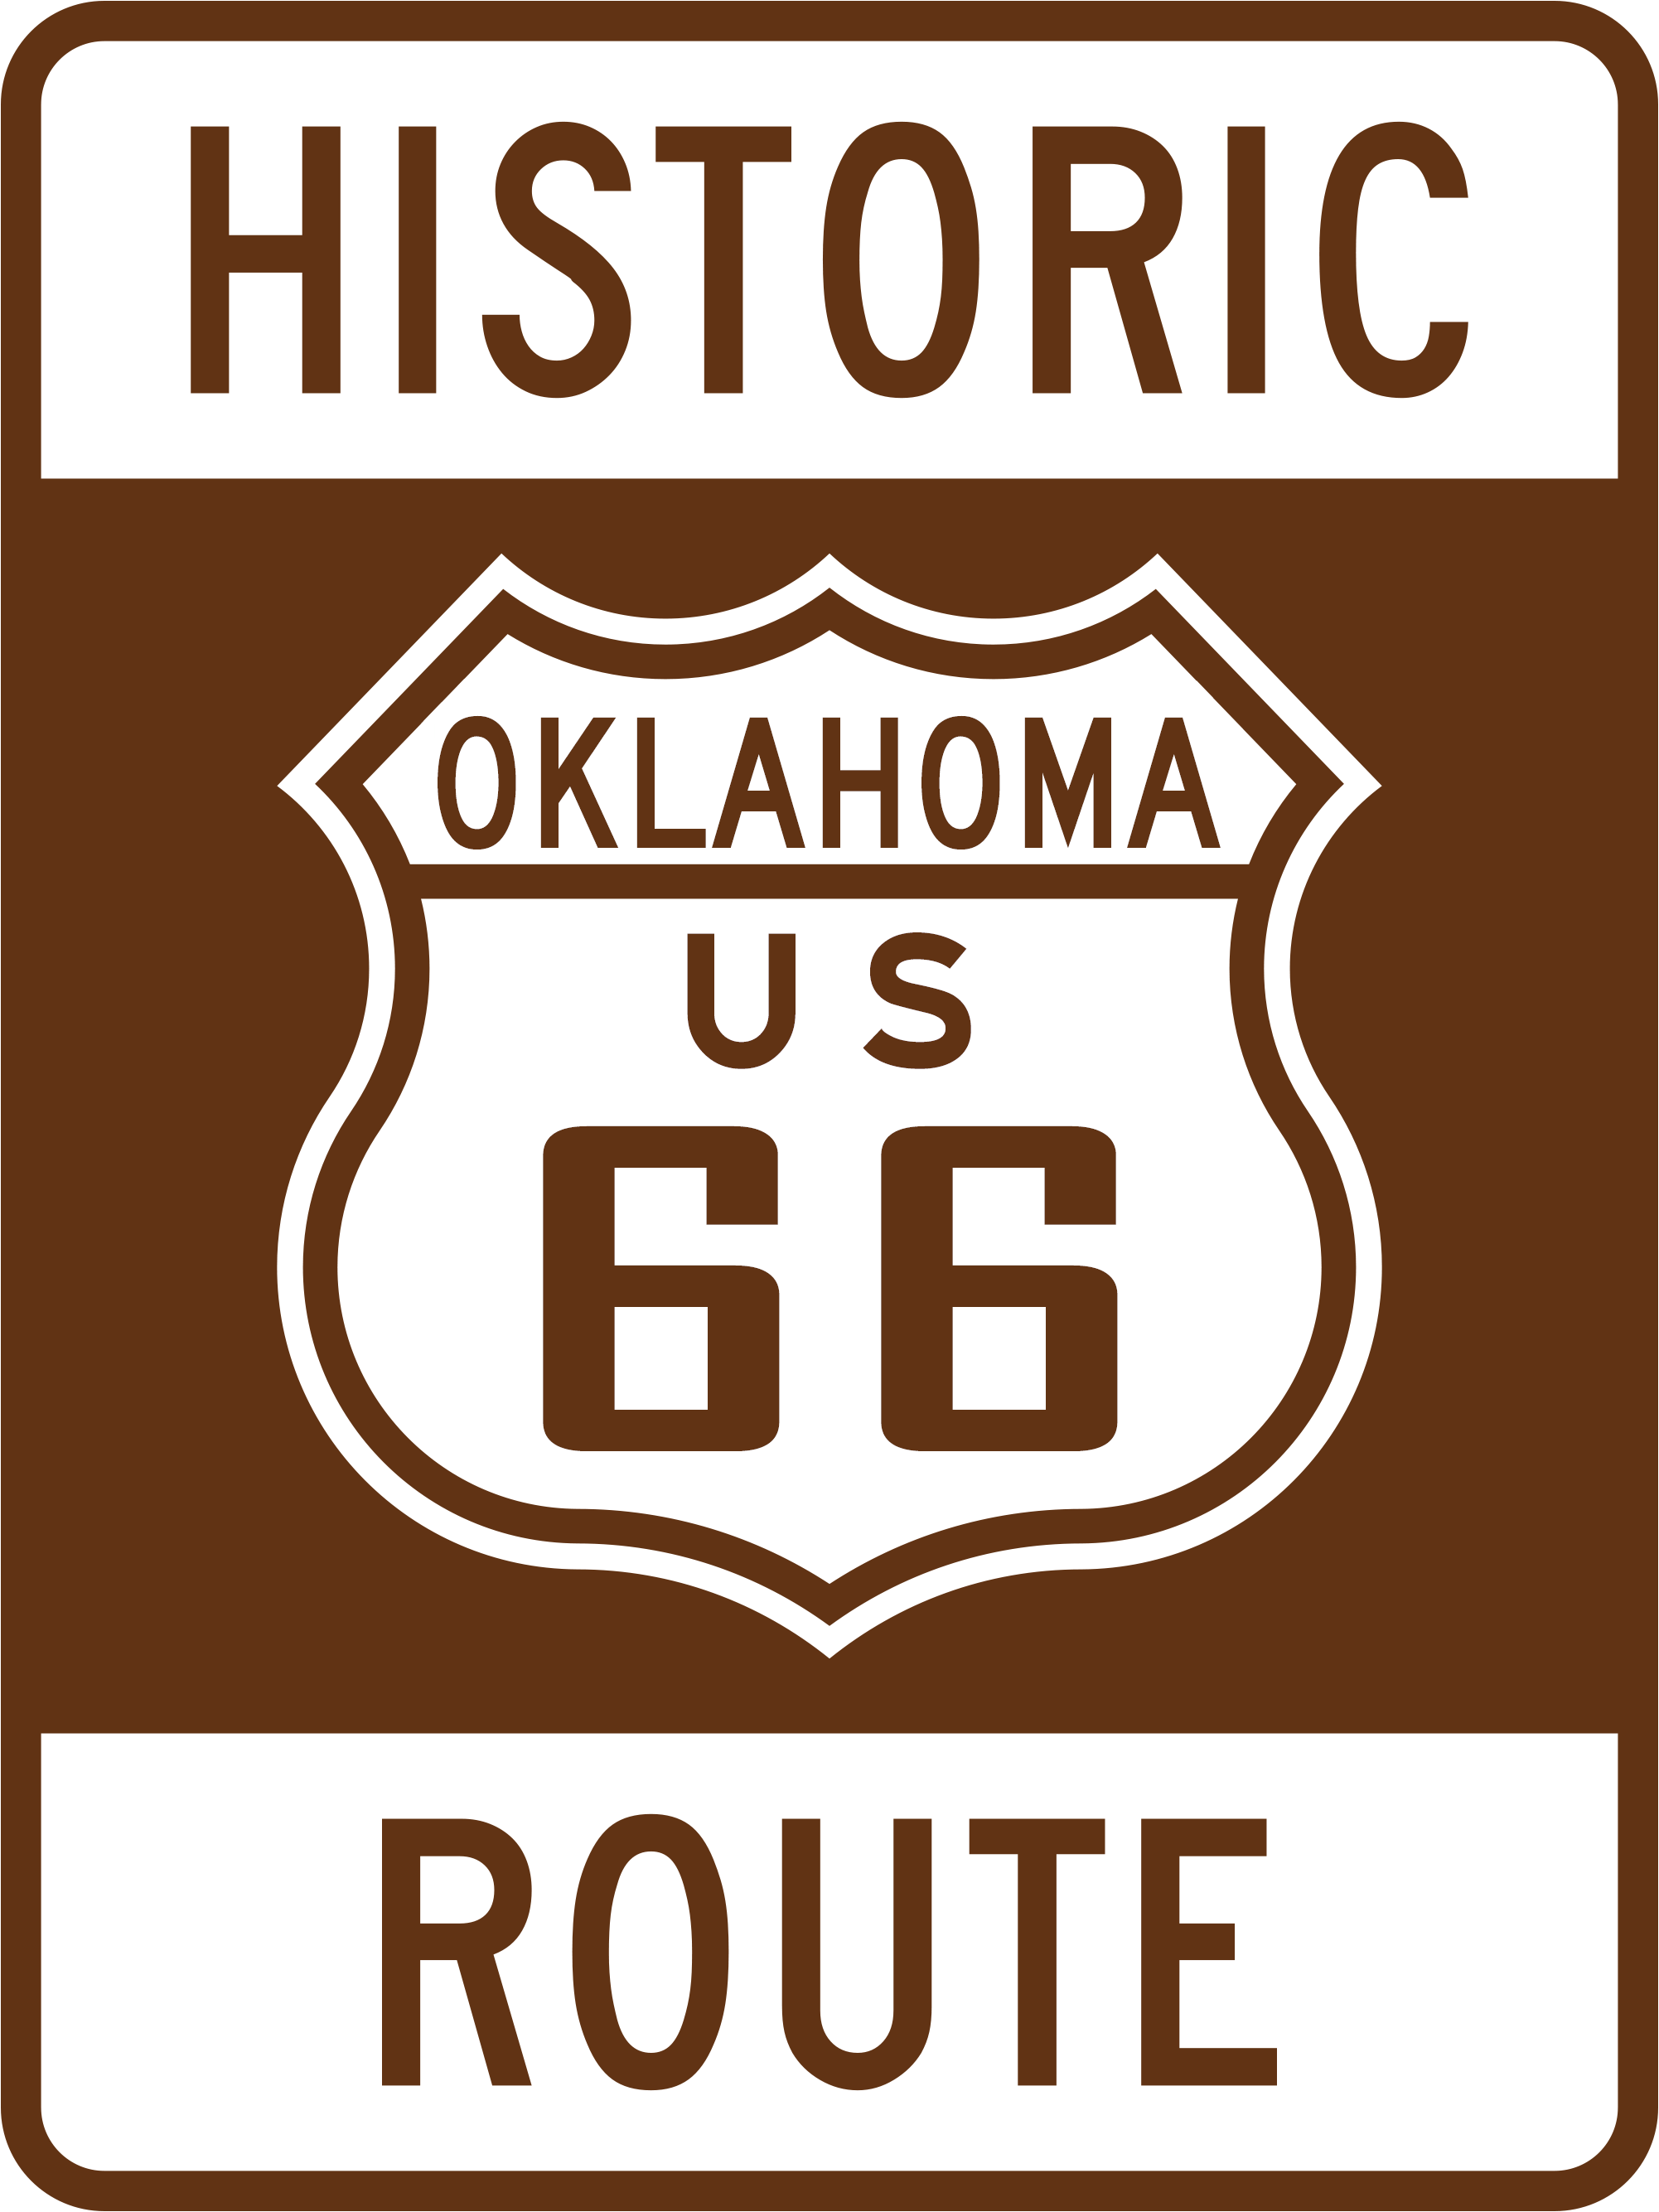 oklahoma city map with File Historic Oklahoma Route 66 on Kansas further Kansas Highway Map in addition Chicago Bulls Unveil New Court Design further 1268 as well File HISTORIC OKLAHOMA ROUTE 66.